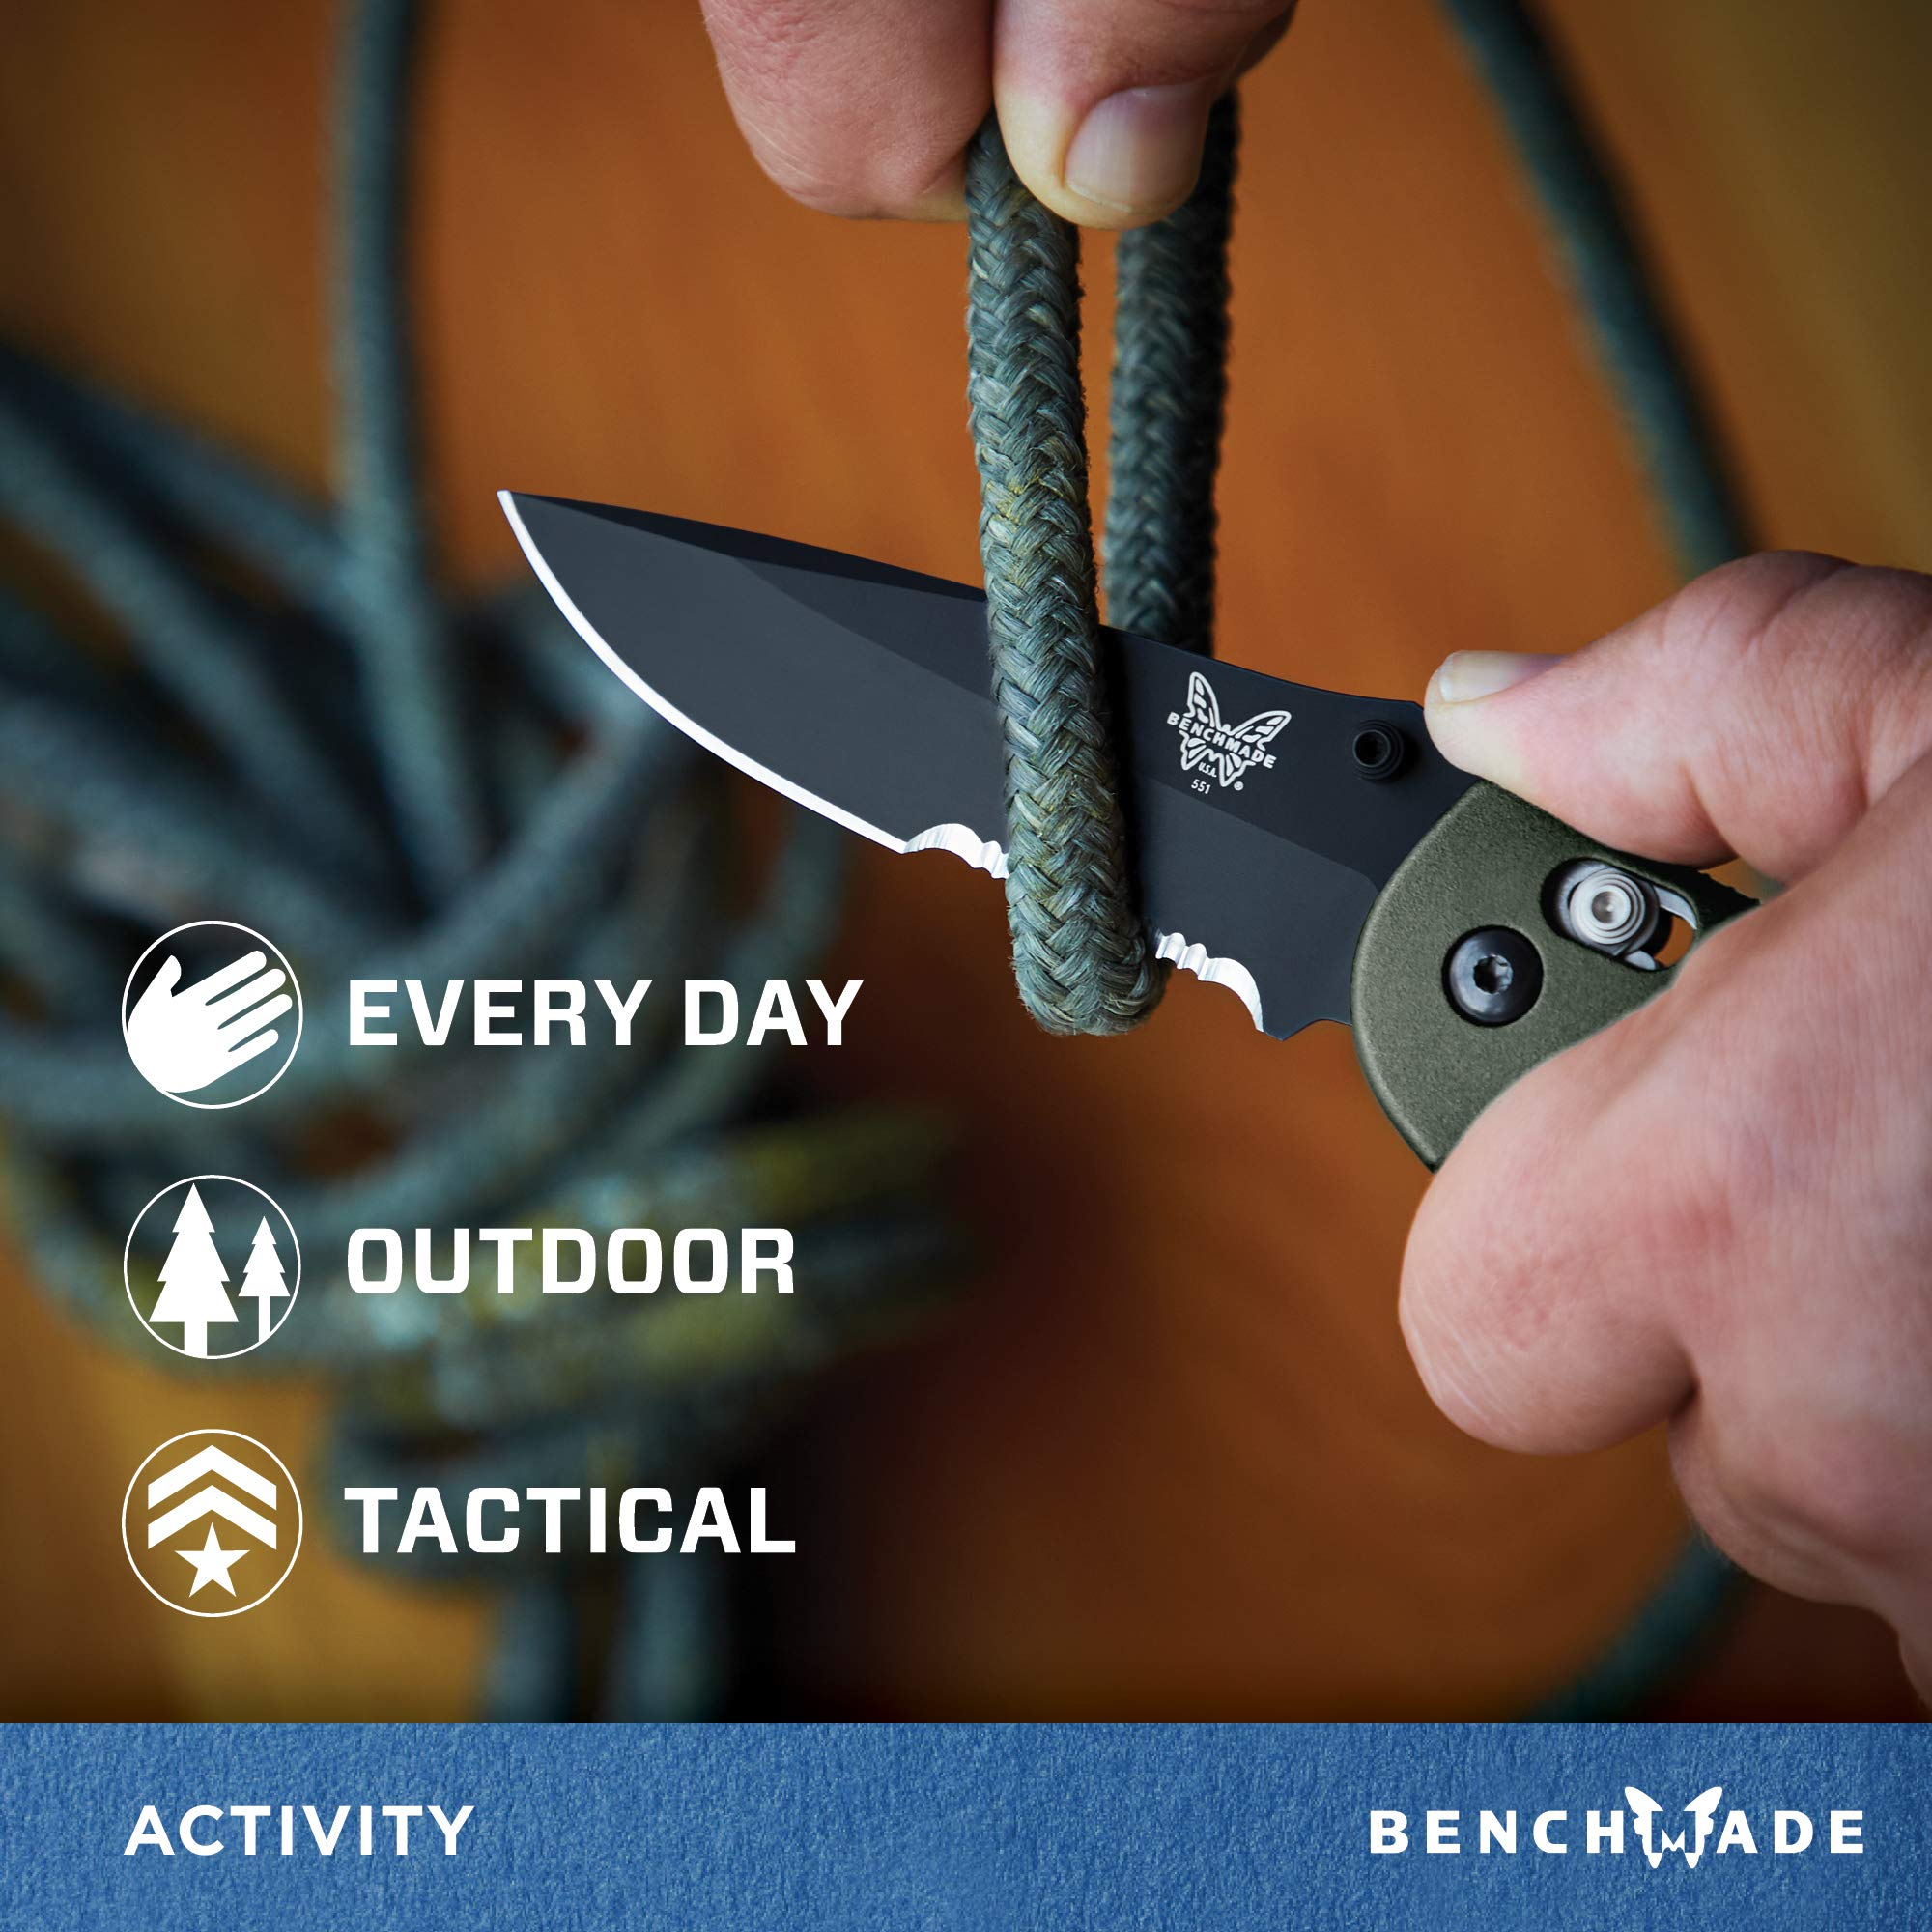 Benchmade - Griptilian 551 Knife with CPM-S30V Steel, Drop-Point Blade, Serrated Edge, Coated Finish, Olive Handle by Benchmade (Image #4)